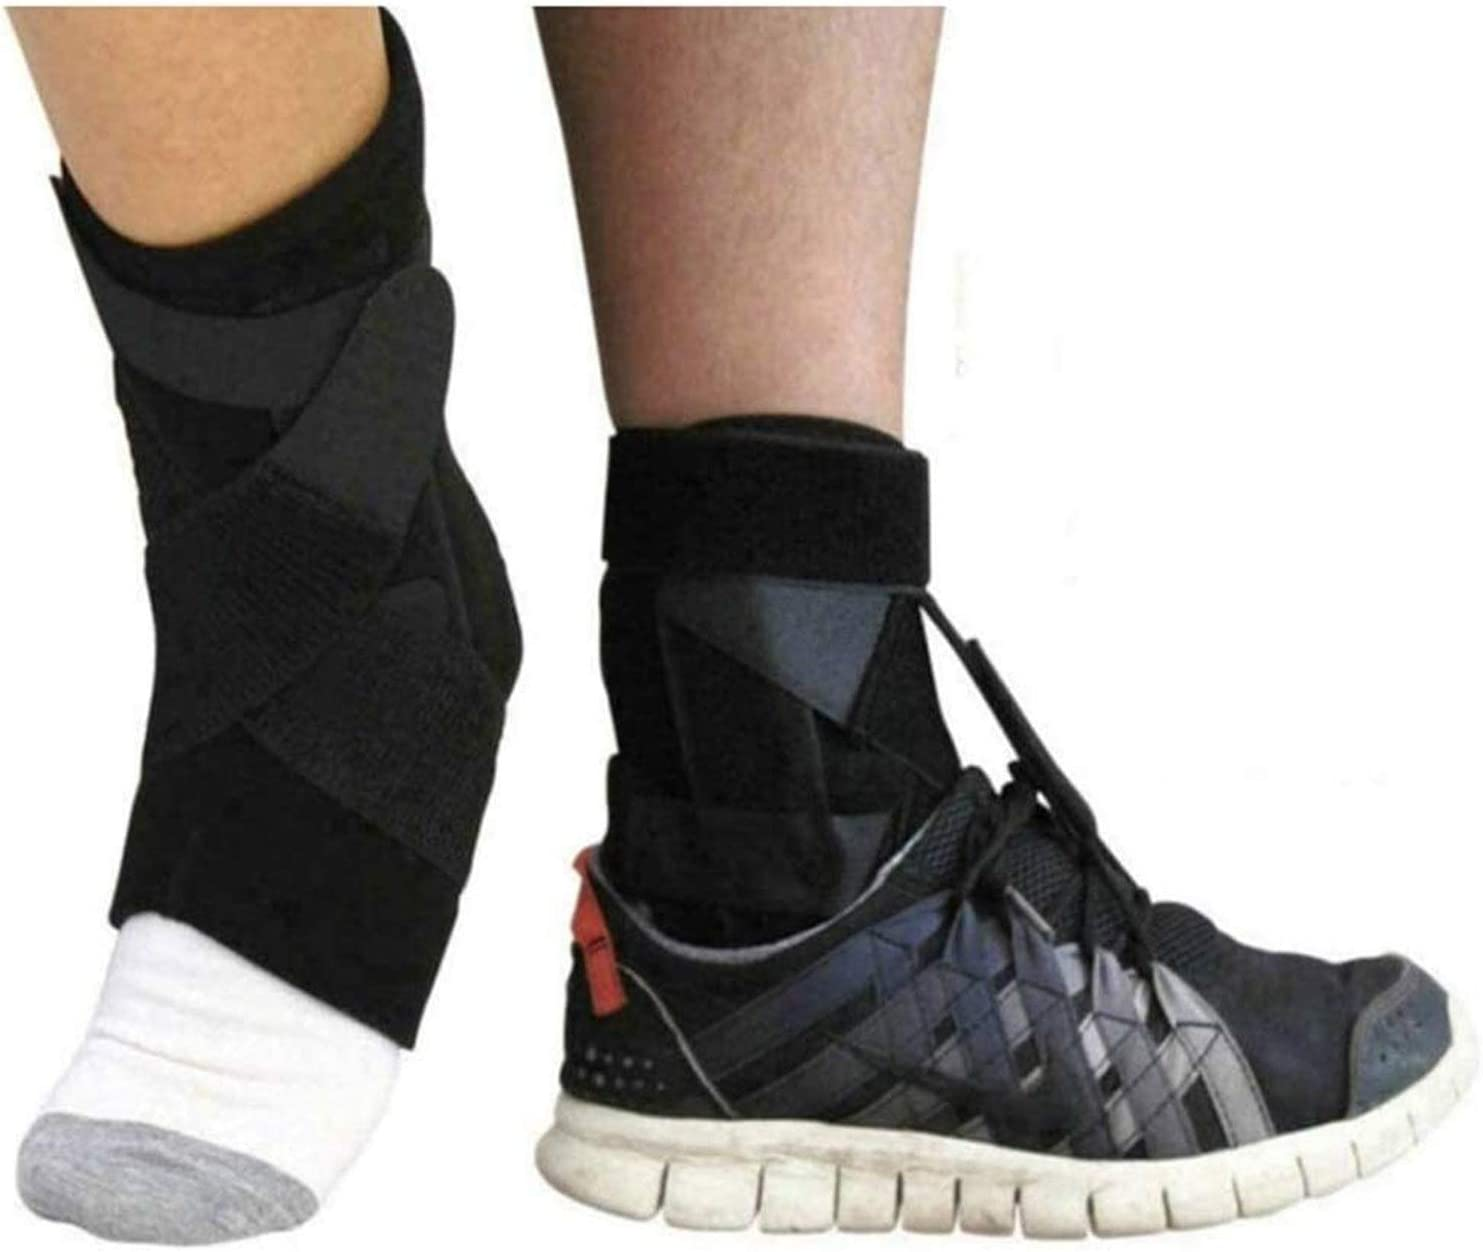 Comfortable Plantar Fasciitis Splint Popular brand in the world for Re Orthosis Ankle-Foot Japan's largest assortment